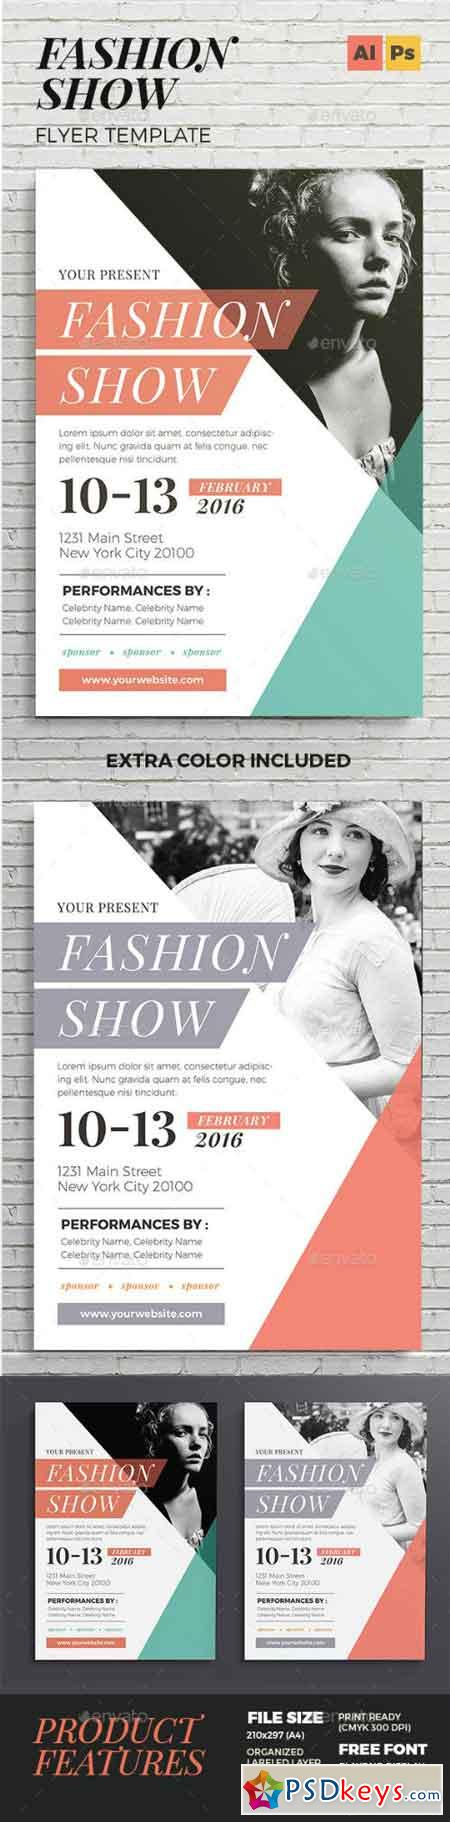 Fashion Show Flyer 14496004